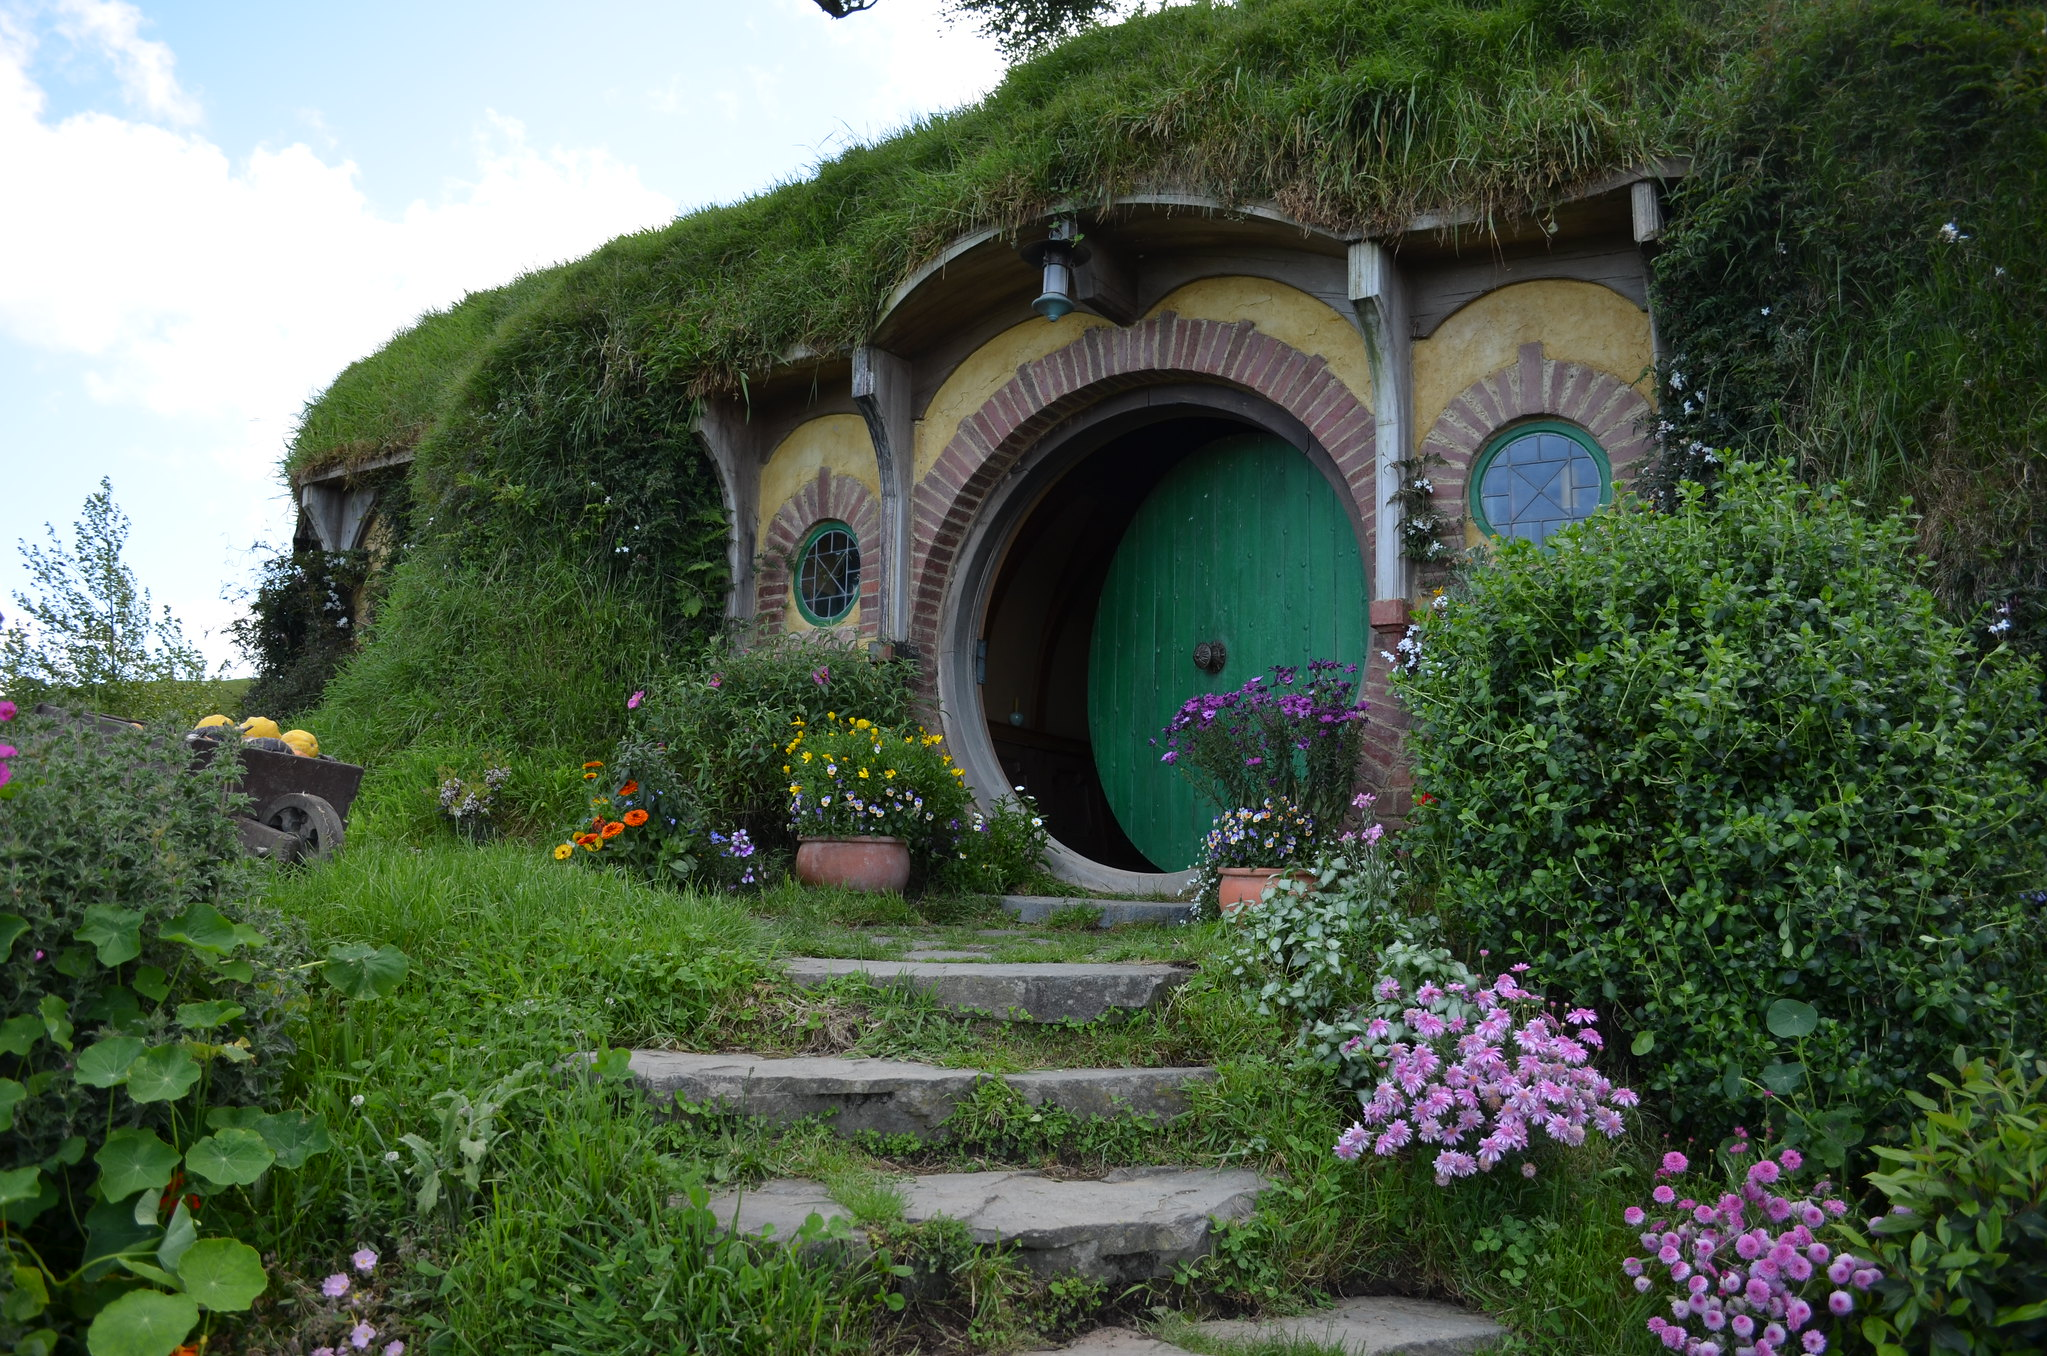 Hobbiton - Bag End